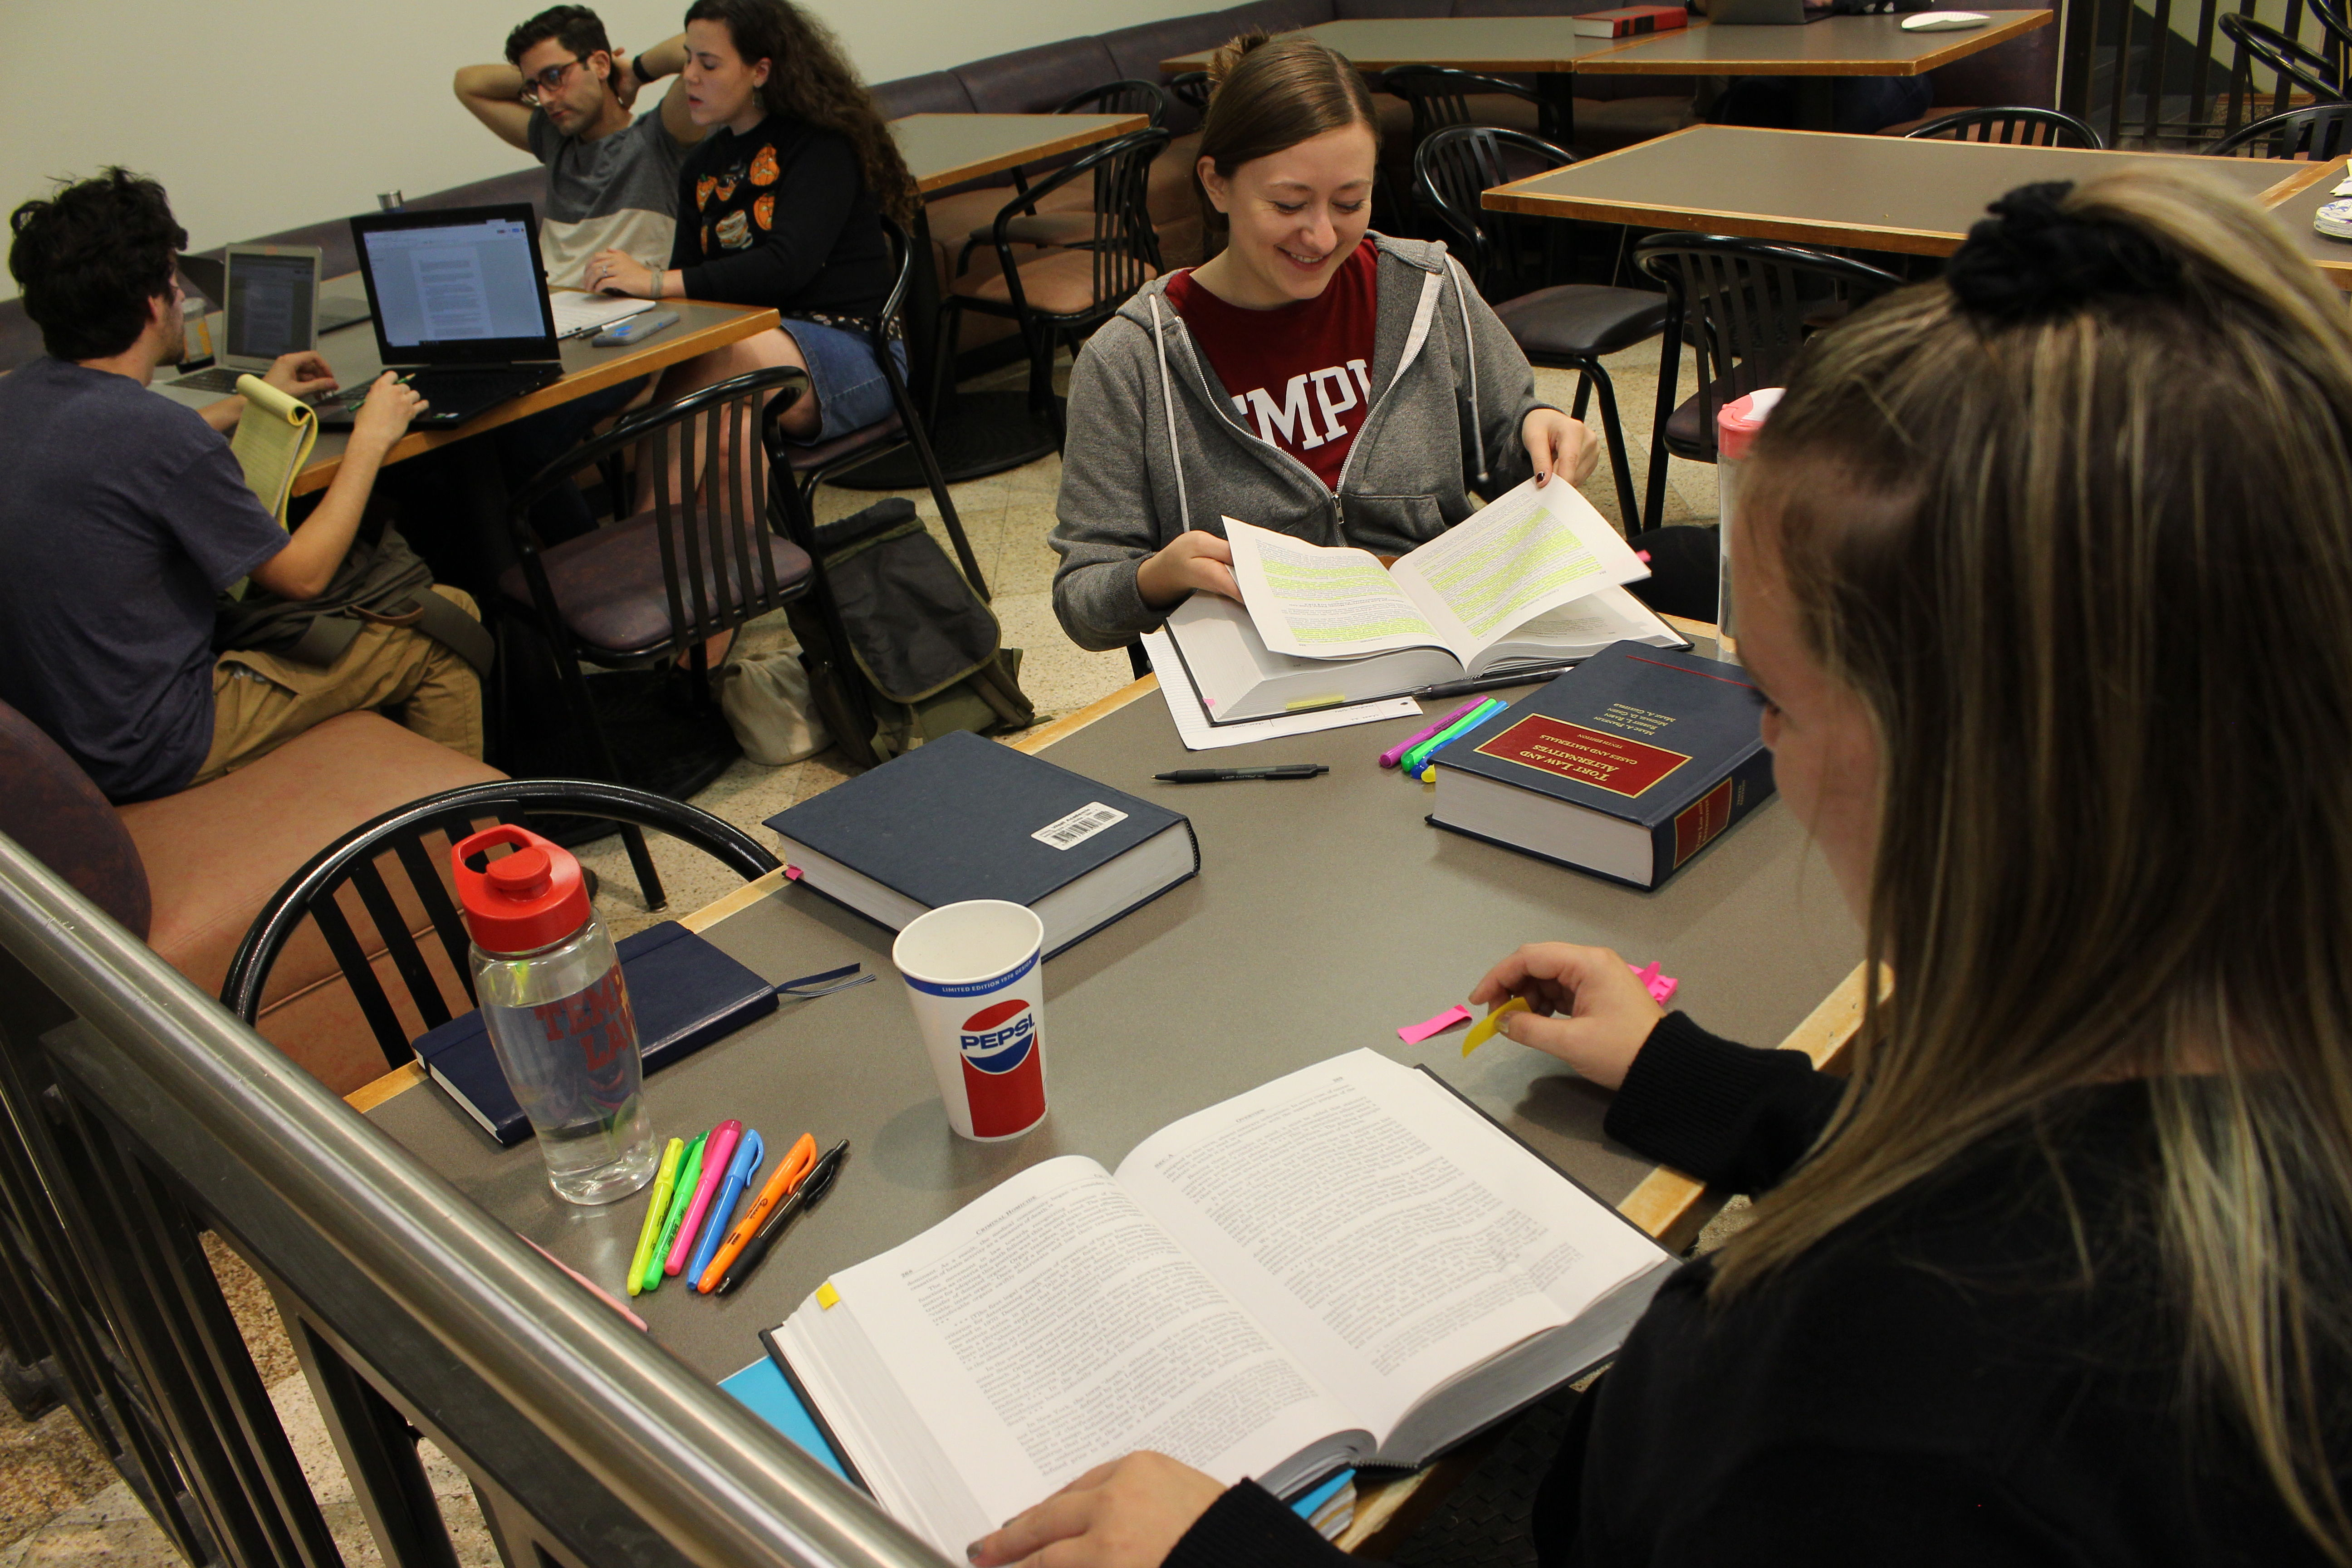 Temple Law students preparing for Introduction to Transactional Skills in October of 2018 in the Klein Hall cafe.